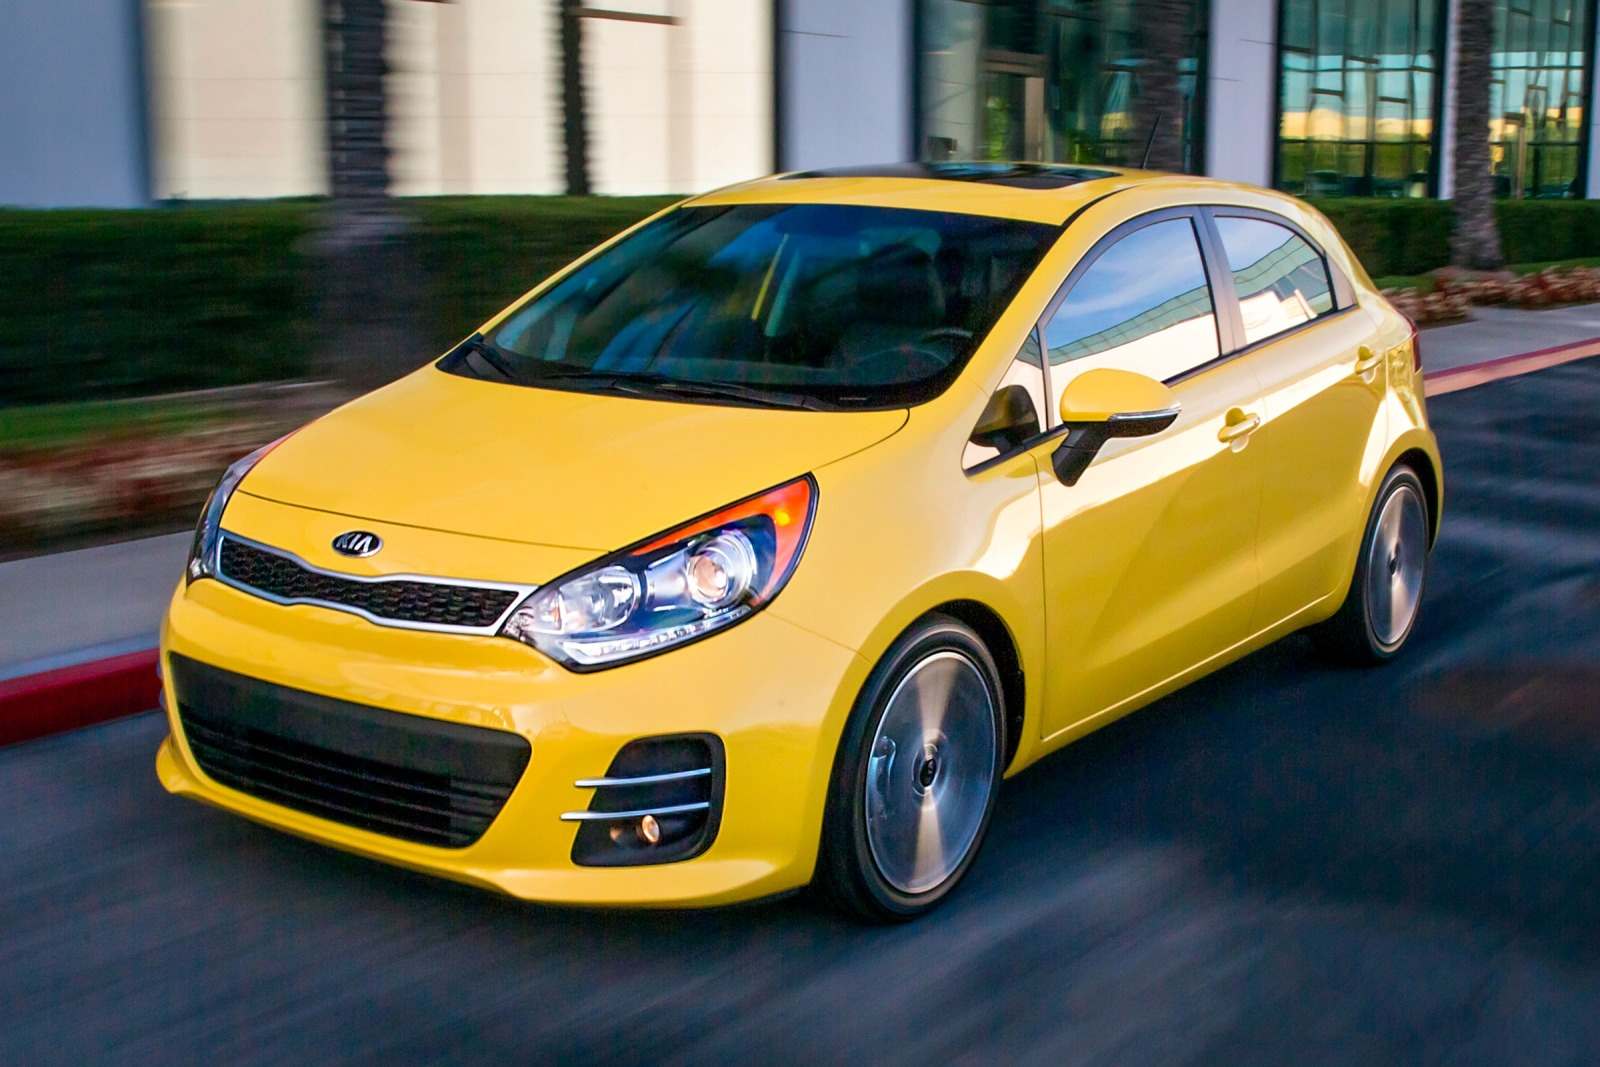 2016 Kia Rio Amazing Wallpapers 1600x1067